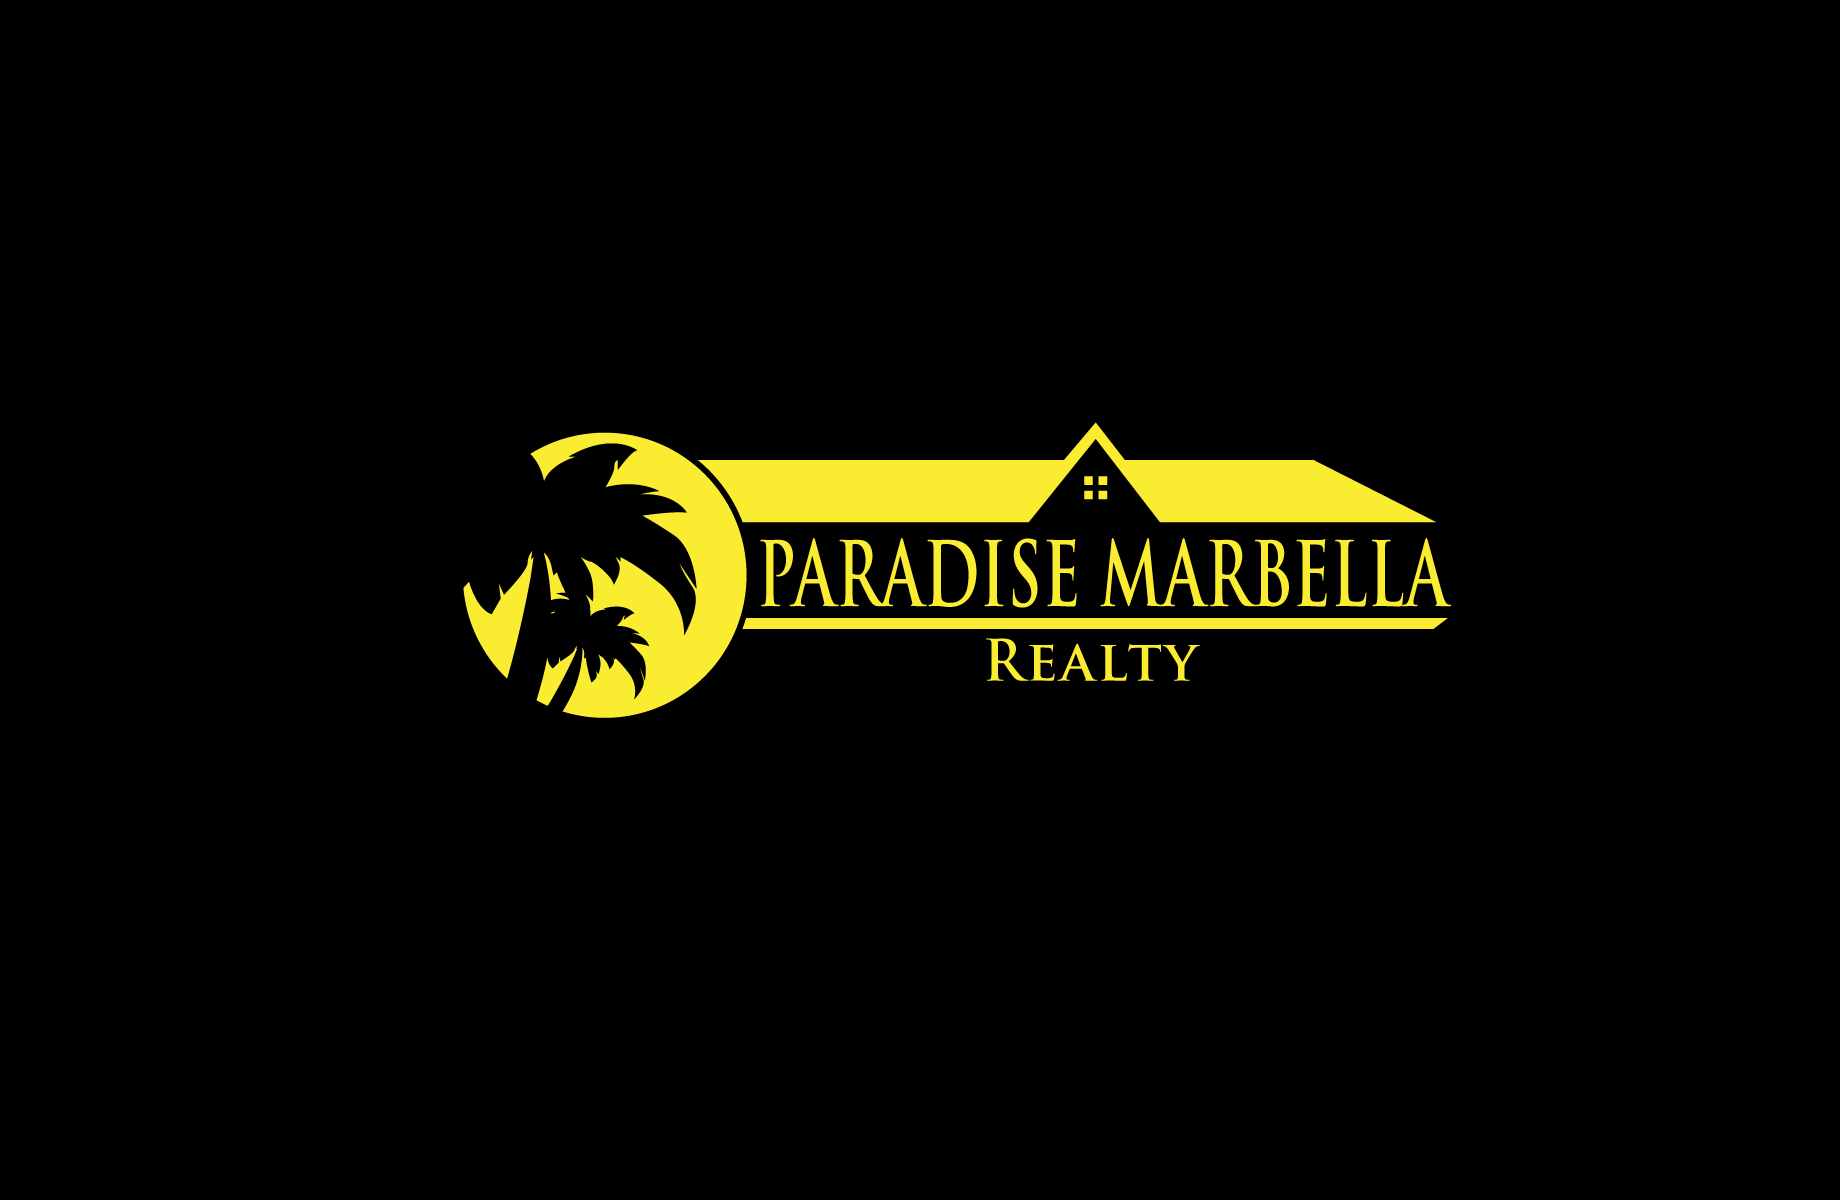 Logo Design by Jan Chua - Entry No. 40 in the Logo Design Contest Captivating Logo Design for Paradise Marbella Realty.